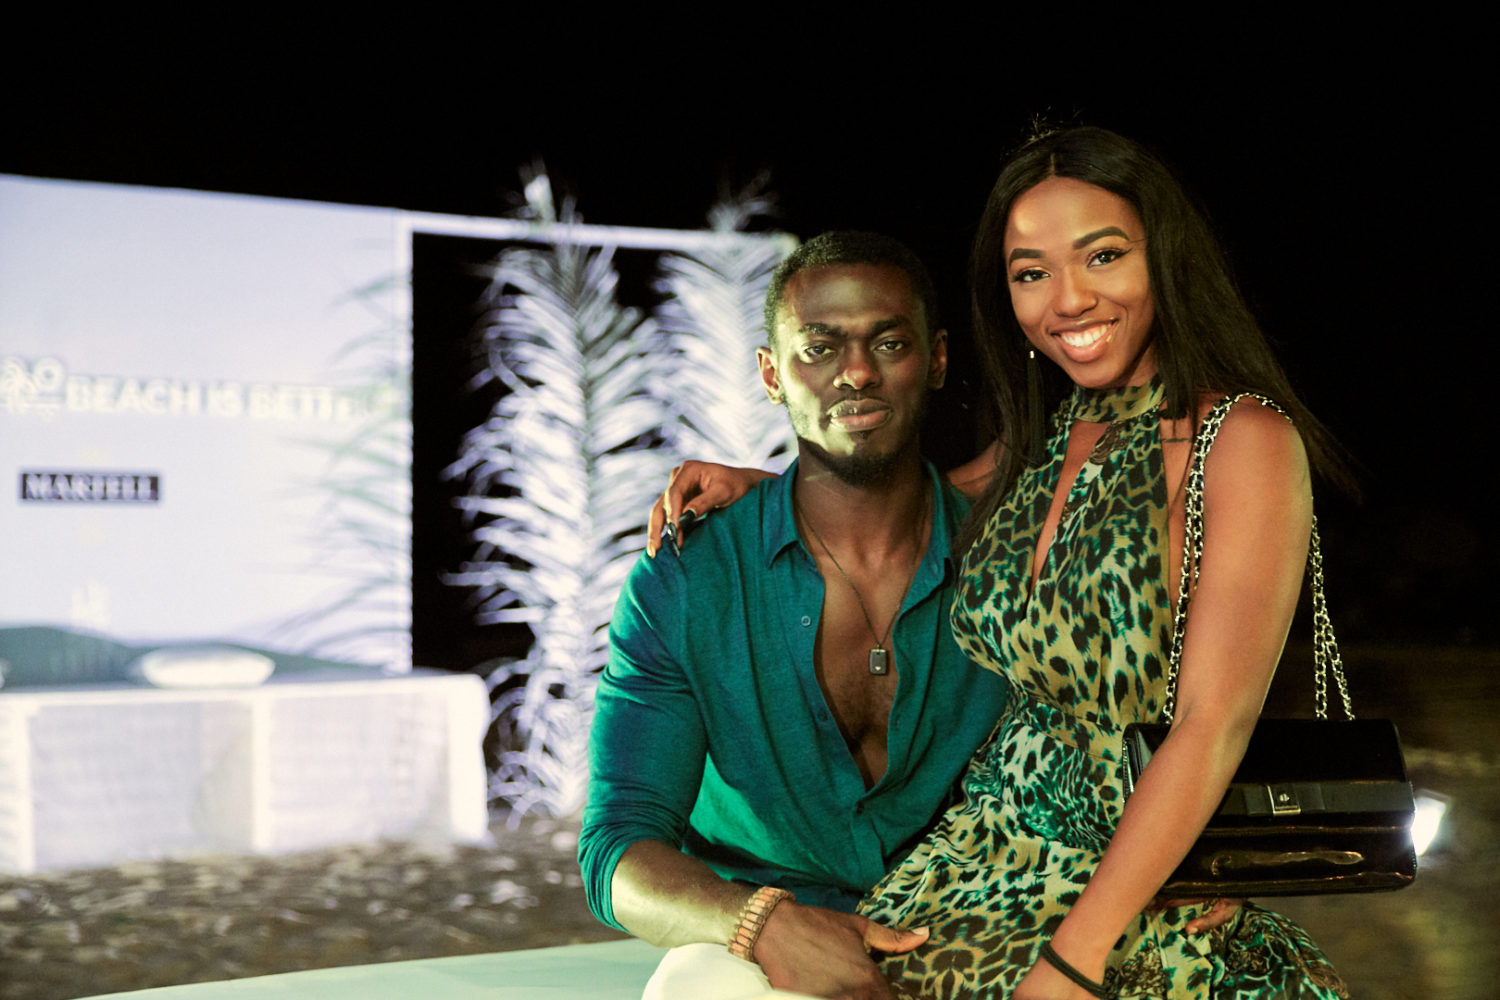 SCHICK Magazine & Beach Is Better Host the Most Lavish Pre Fashion Week Party Ever – See the First Photos